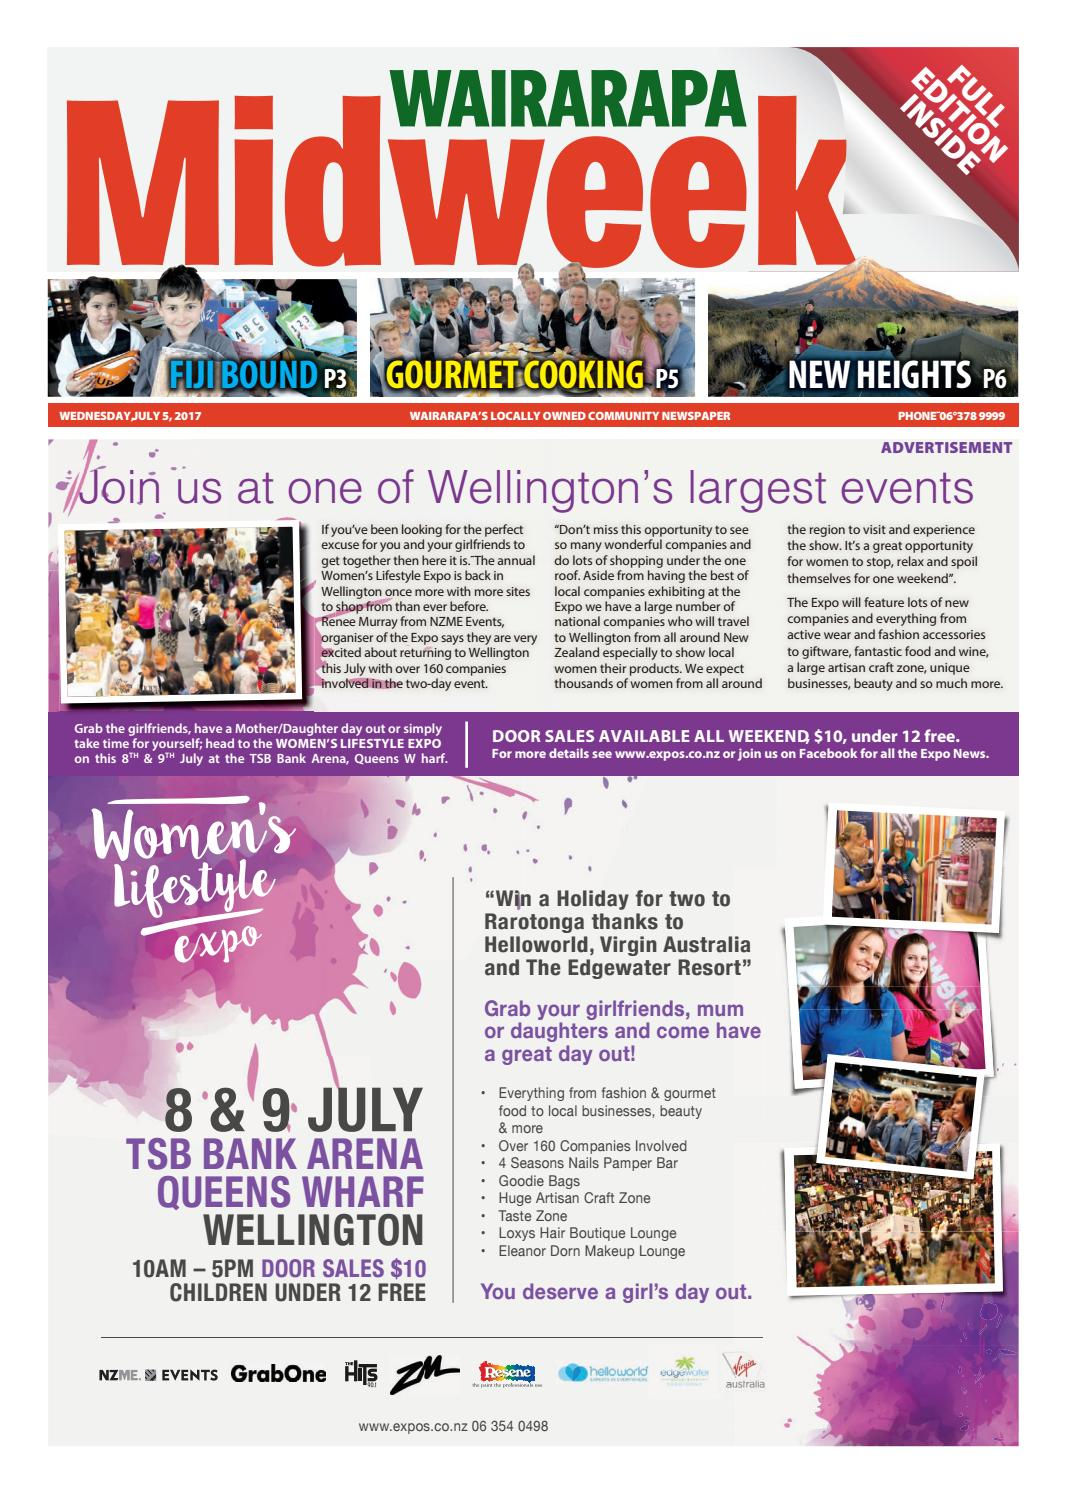 Wairarapa Midweek Wed 5th July by Wairarapa Times-Age - issuu